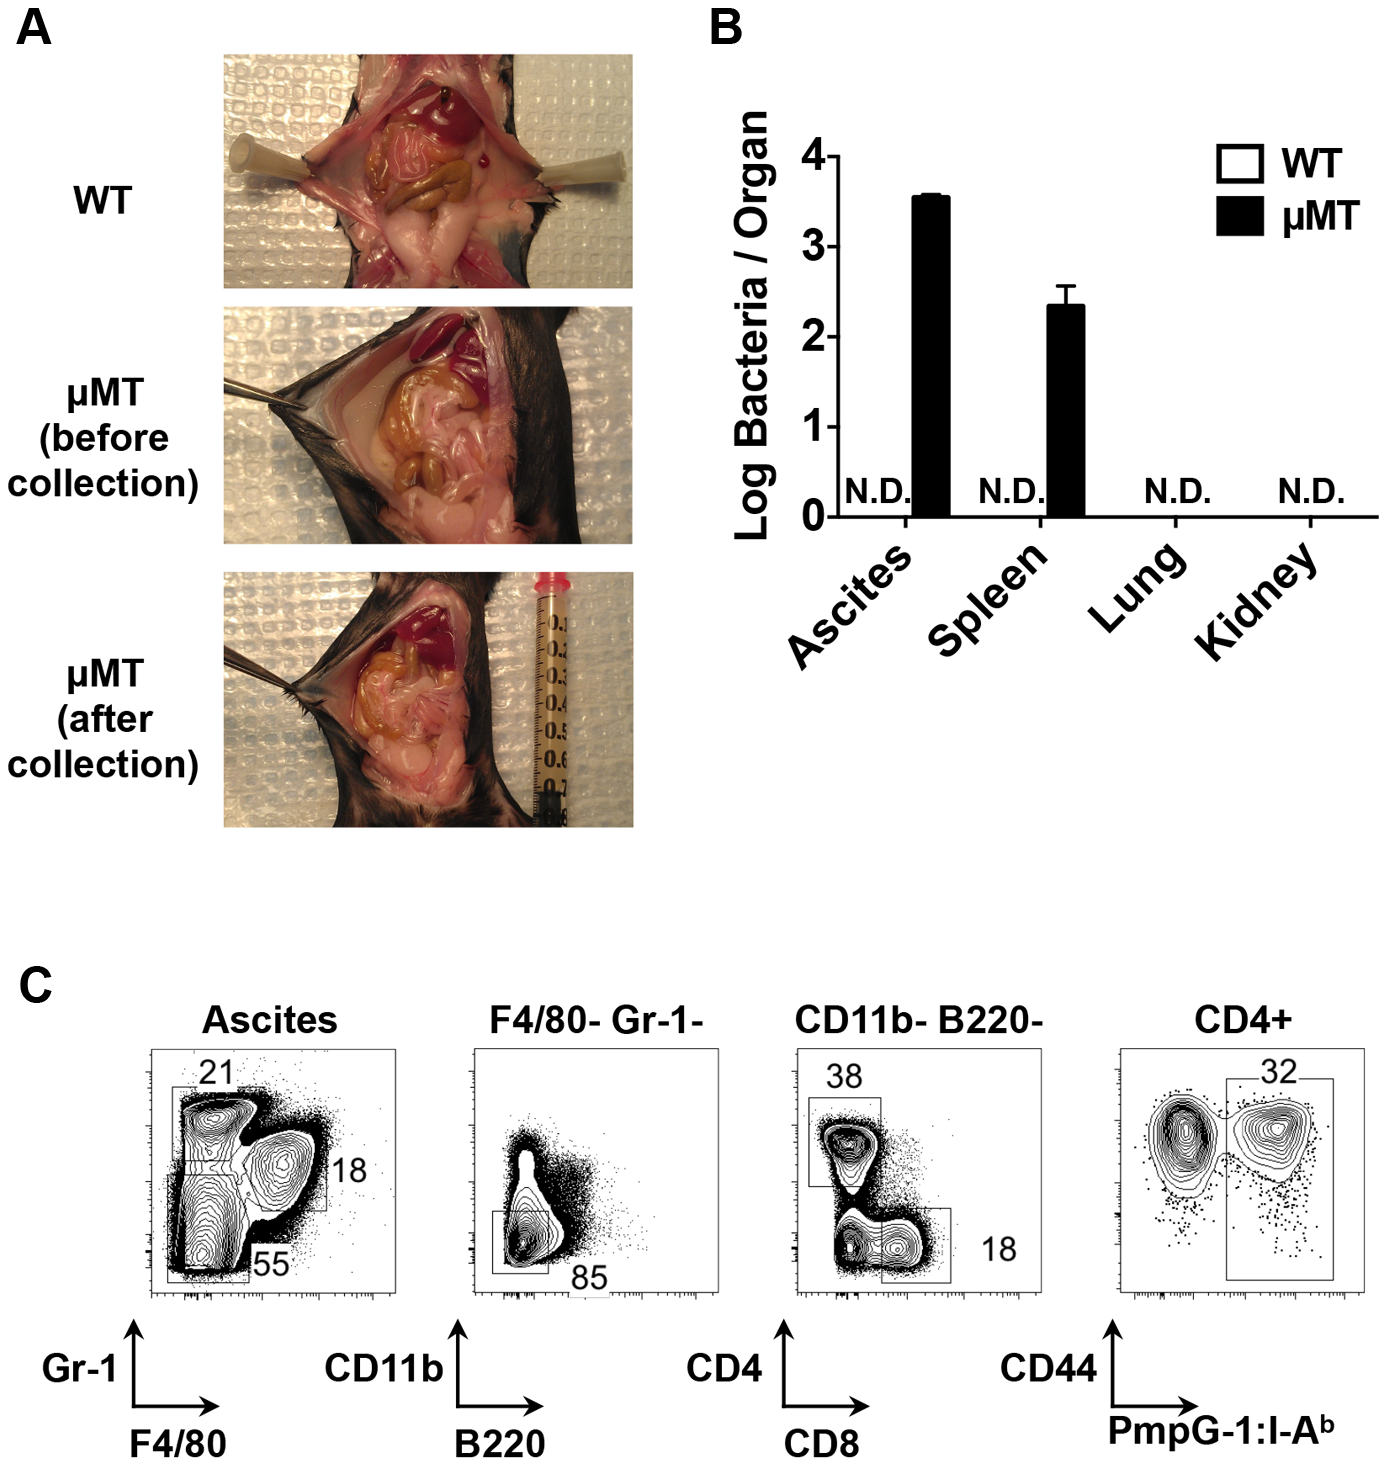 Dissemination of bacteria and development of ascites in B cell deficient mice (μMT) after <i>C. muridarm</i> i.vag. infection.